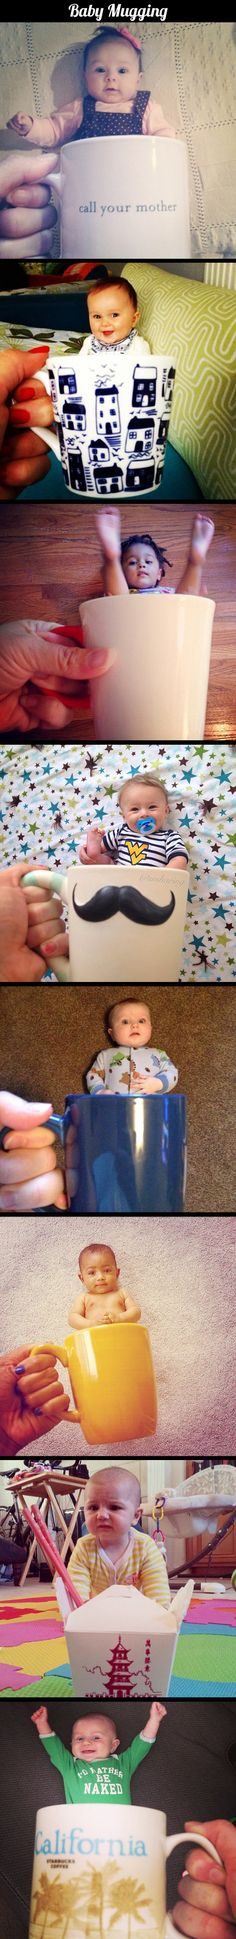 this is hilarious! Baby Mugging // funny pictures - funny photos - funny images - funny pics - funny quotes - Funny Cute, The Funny, Hilarious, Super Funny, The Meta Picture, Foto Baby, I Love To Laugh, Funny Photos, Funny Images